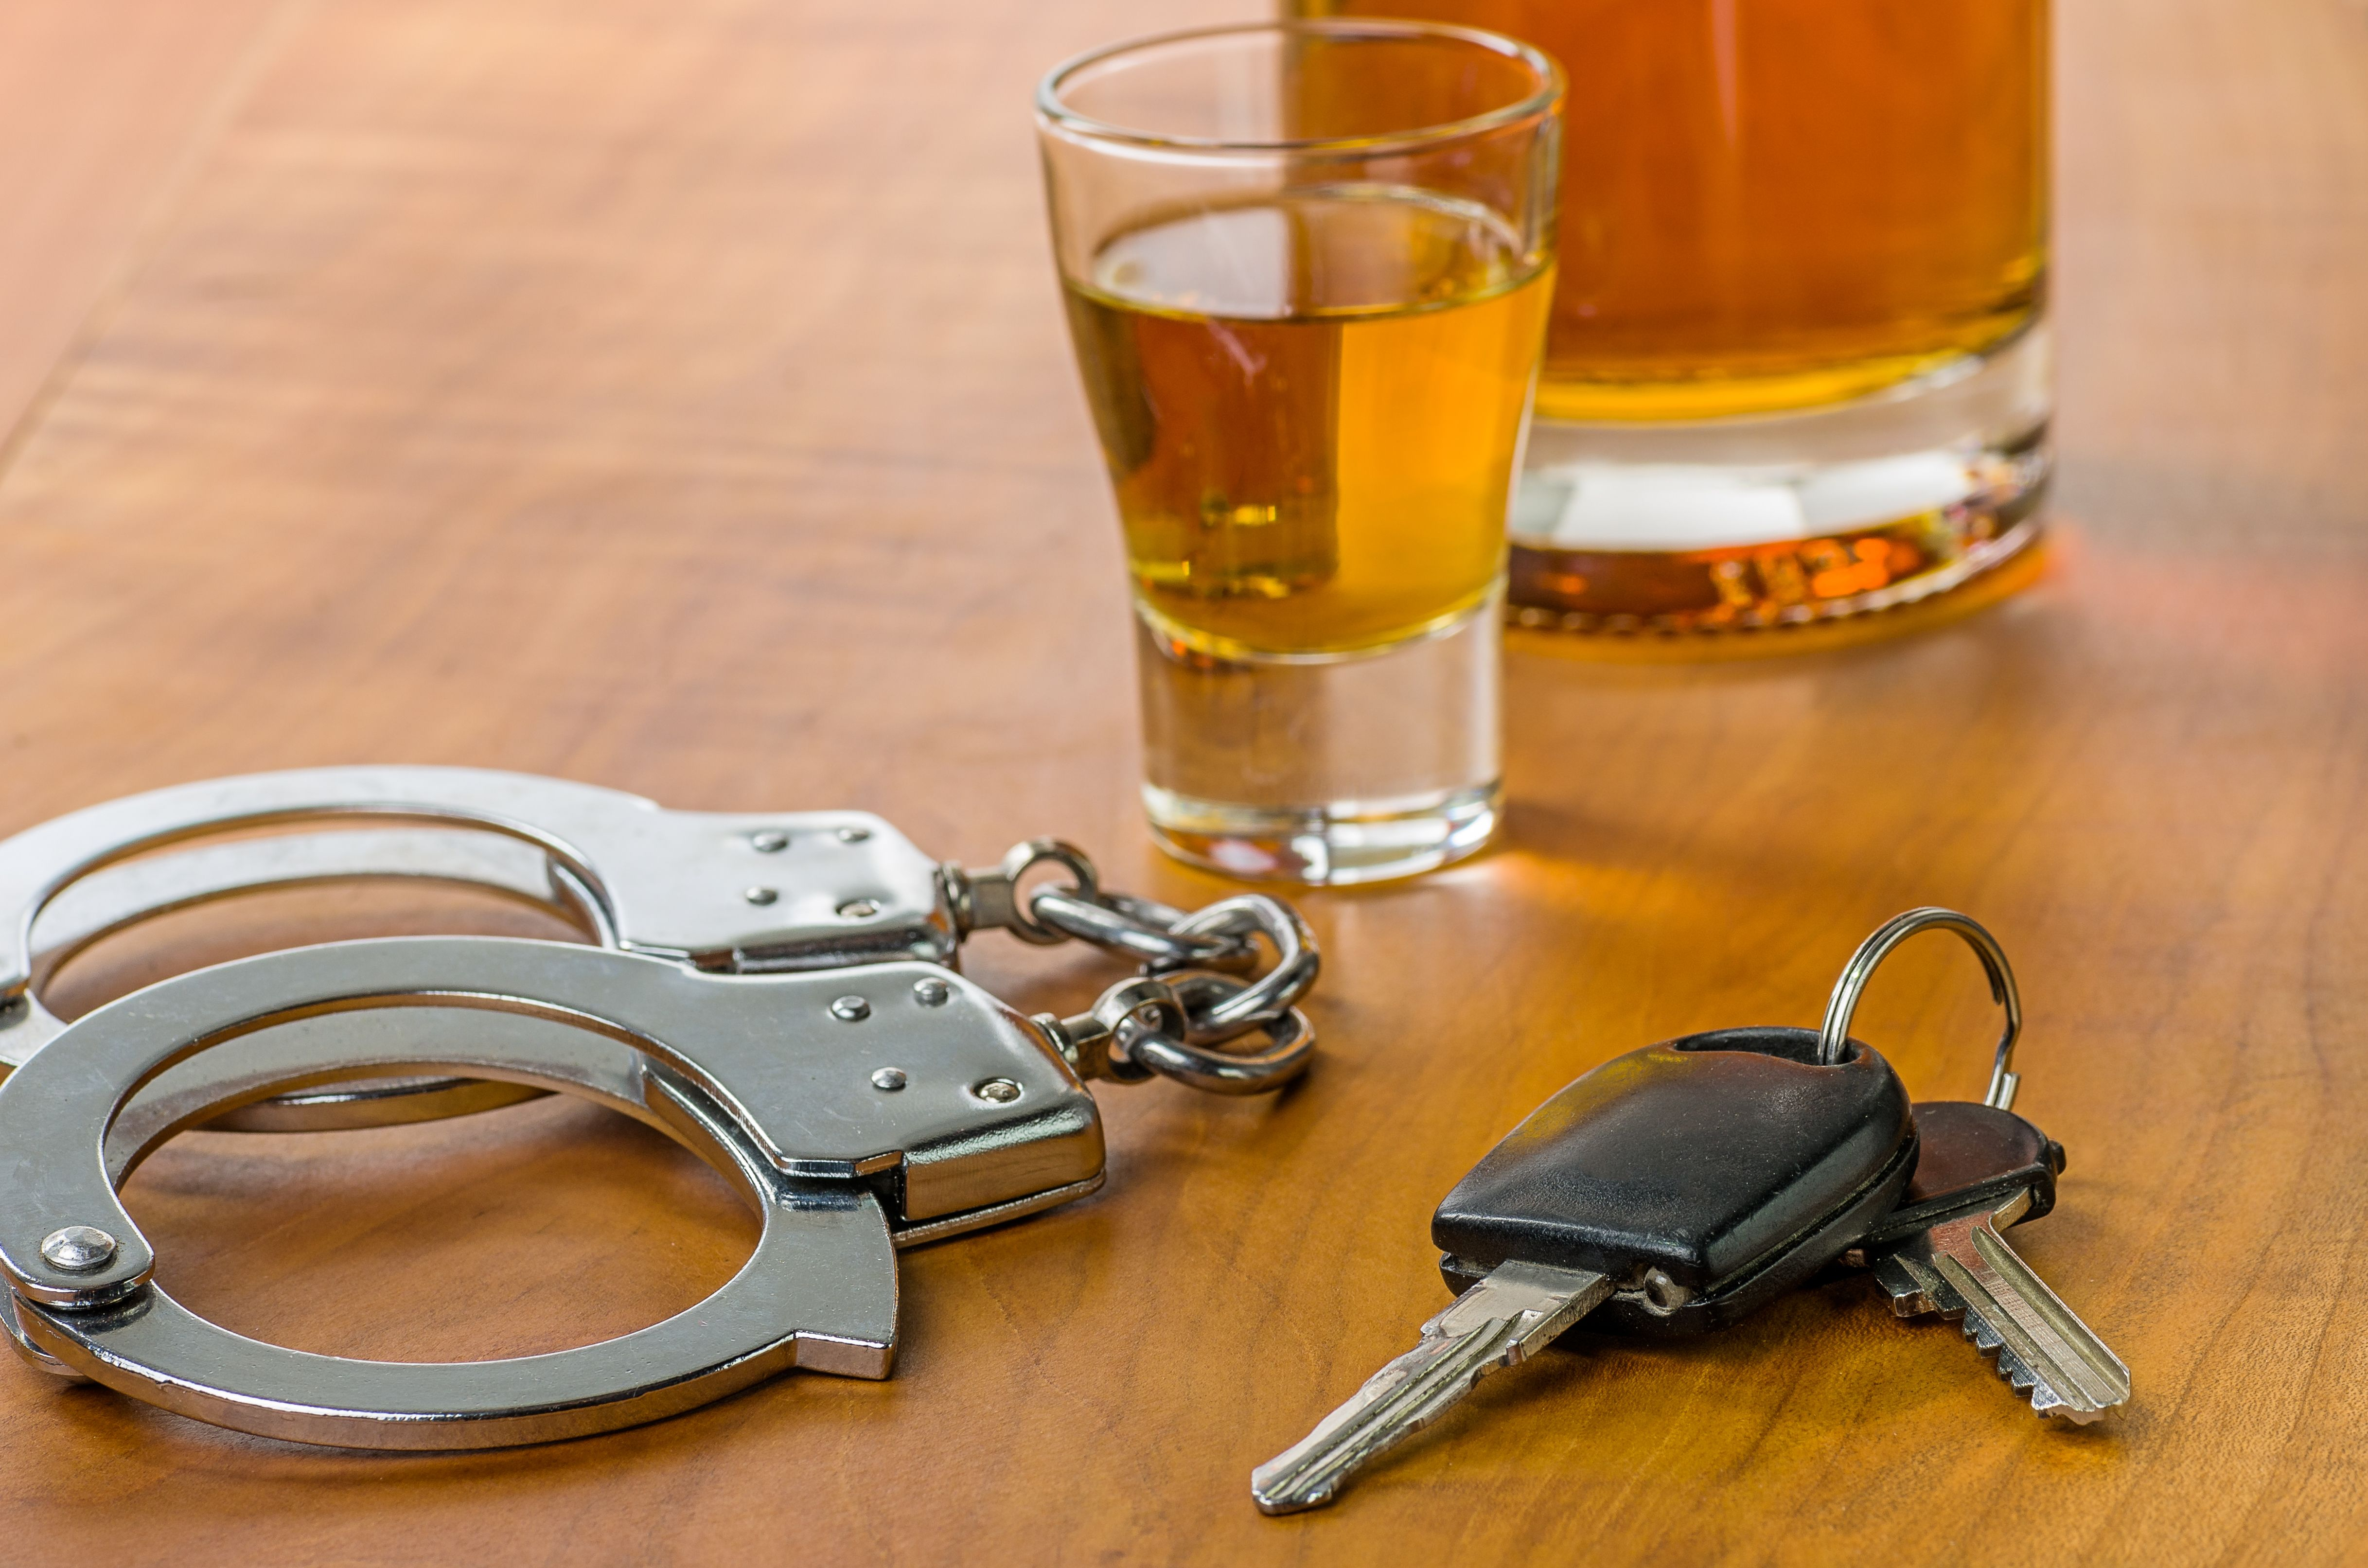 Whiskey, handcuffs and car keys - Seminole County DUI Lawyer